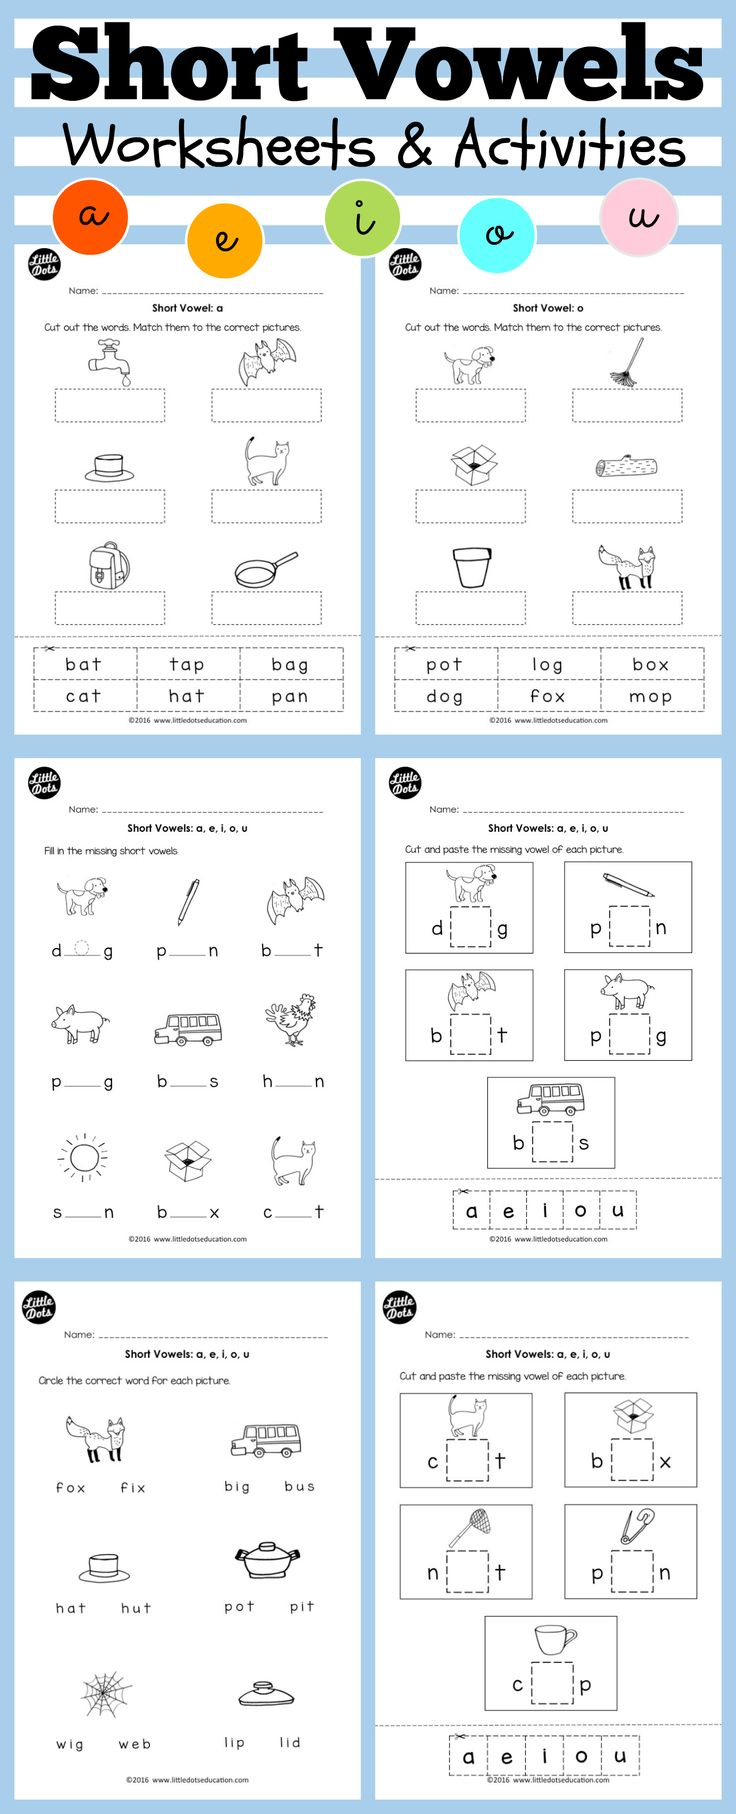 611 Best Worksheets Images On Pinterest Food Items Kid Activities